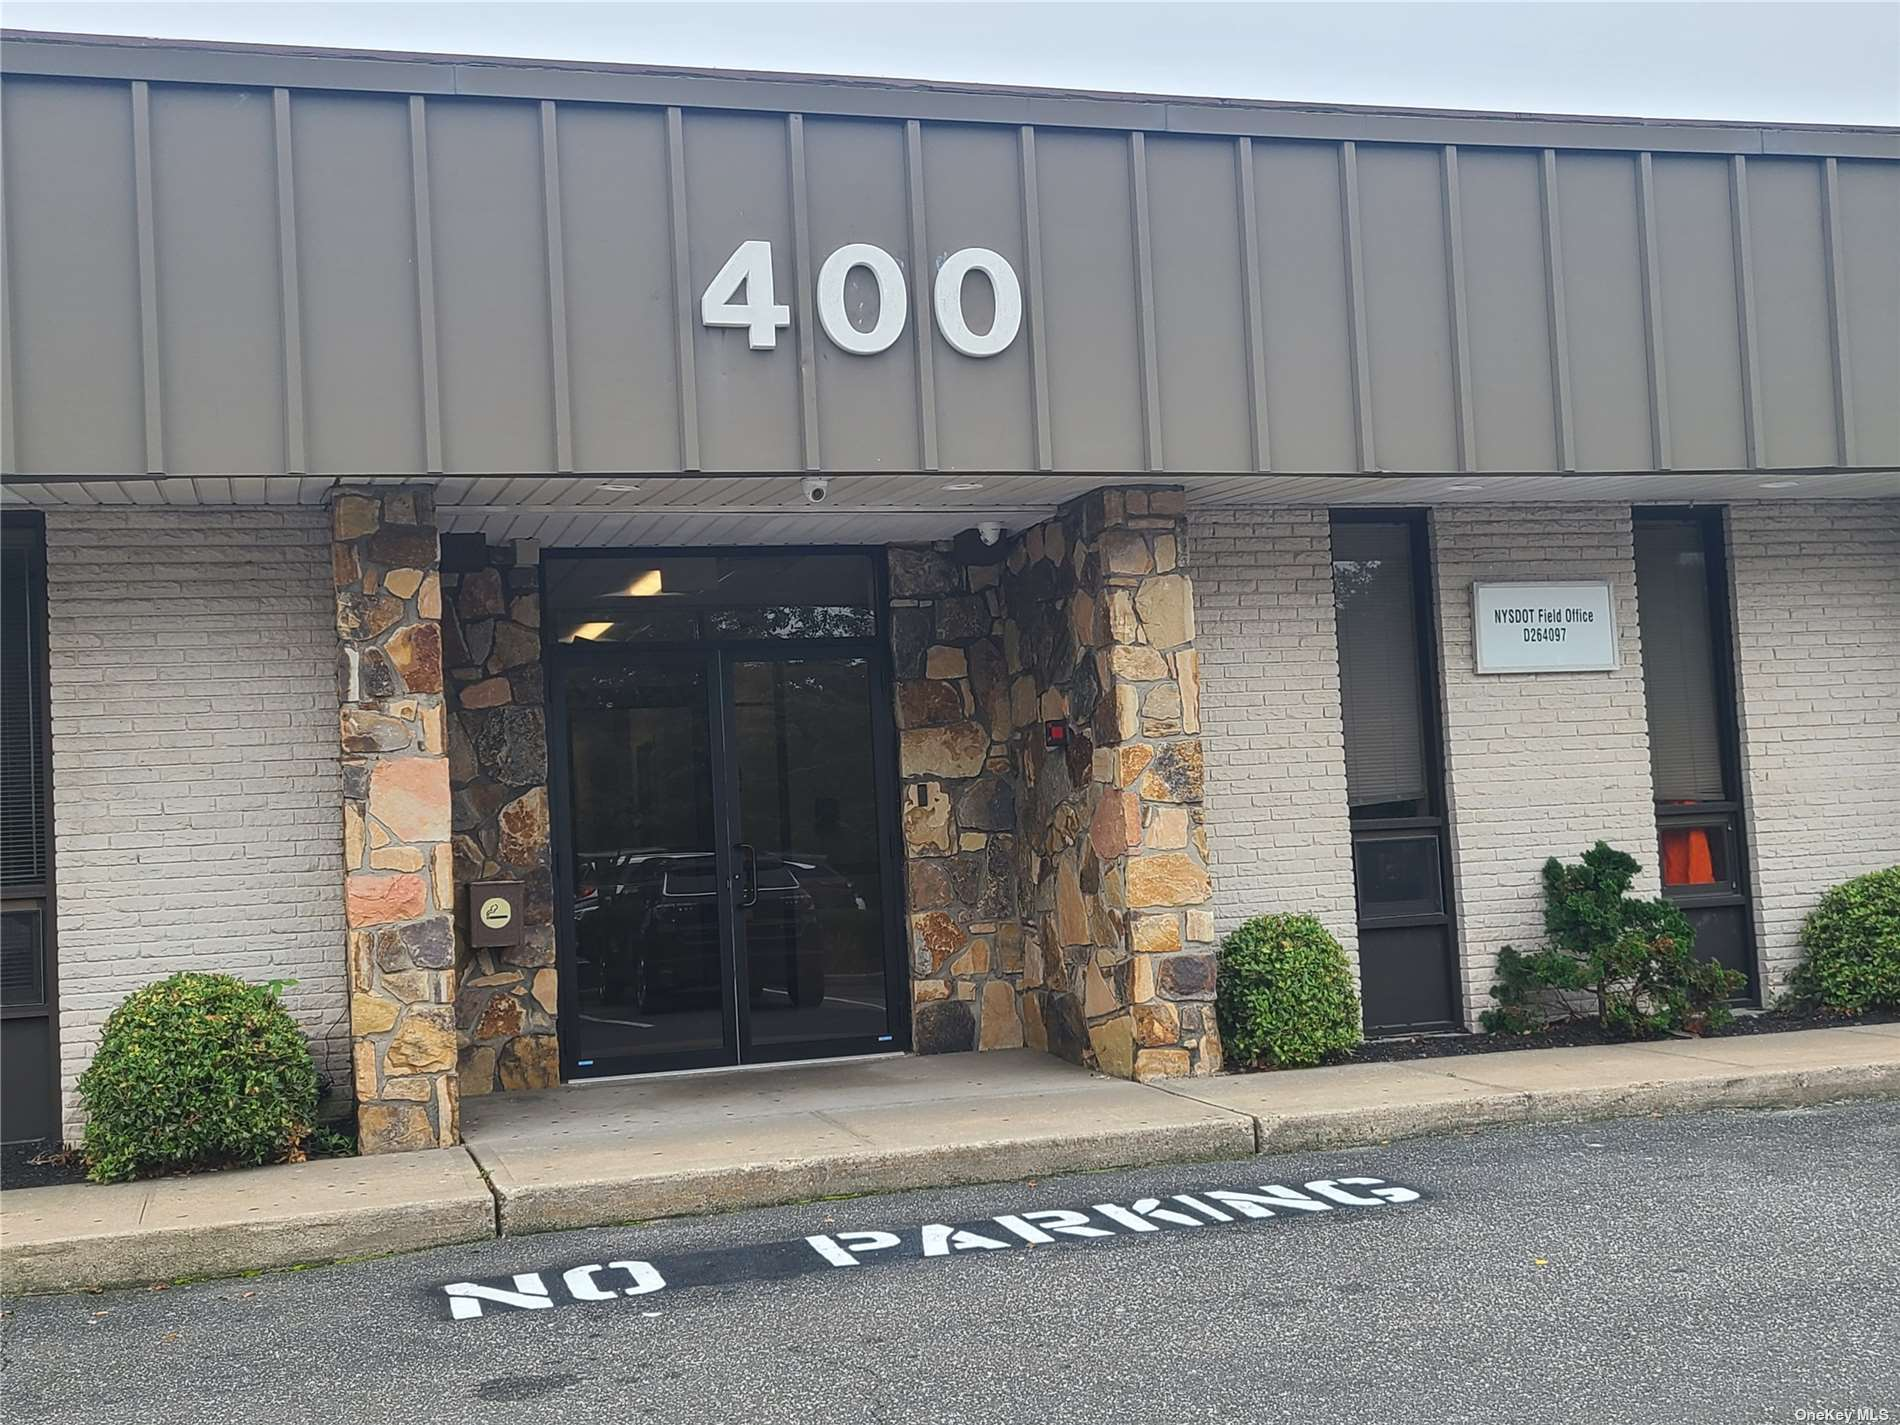 Freshly Painted 2-Room Suite with 258 Square Feet in the 400 Montauk Highway West Islip Professional Office Building in West Islip Where Route 231 Meets.  Rent Includes Heat and Central Air Conditioning.  Tenant Pays Their Own Electric.